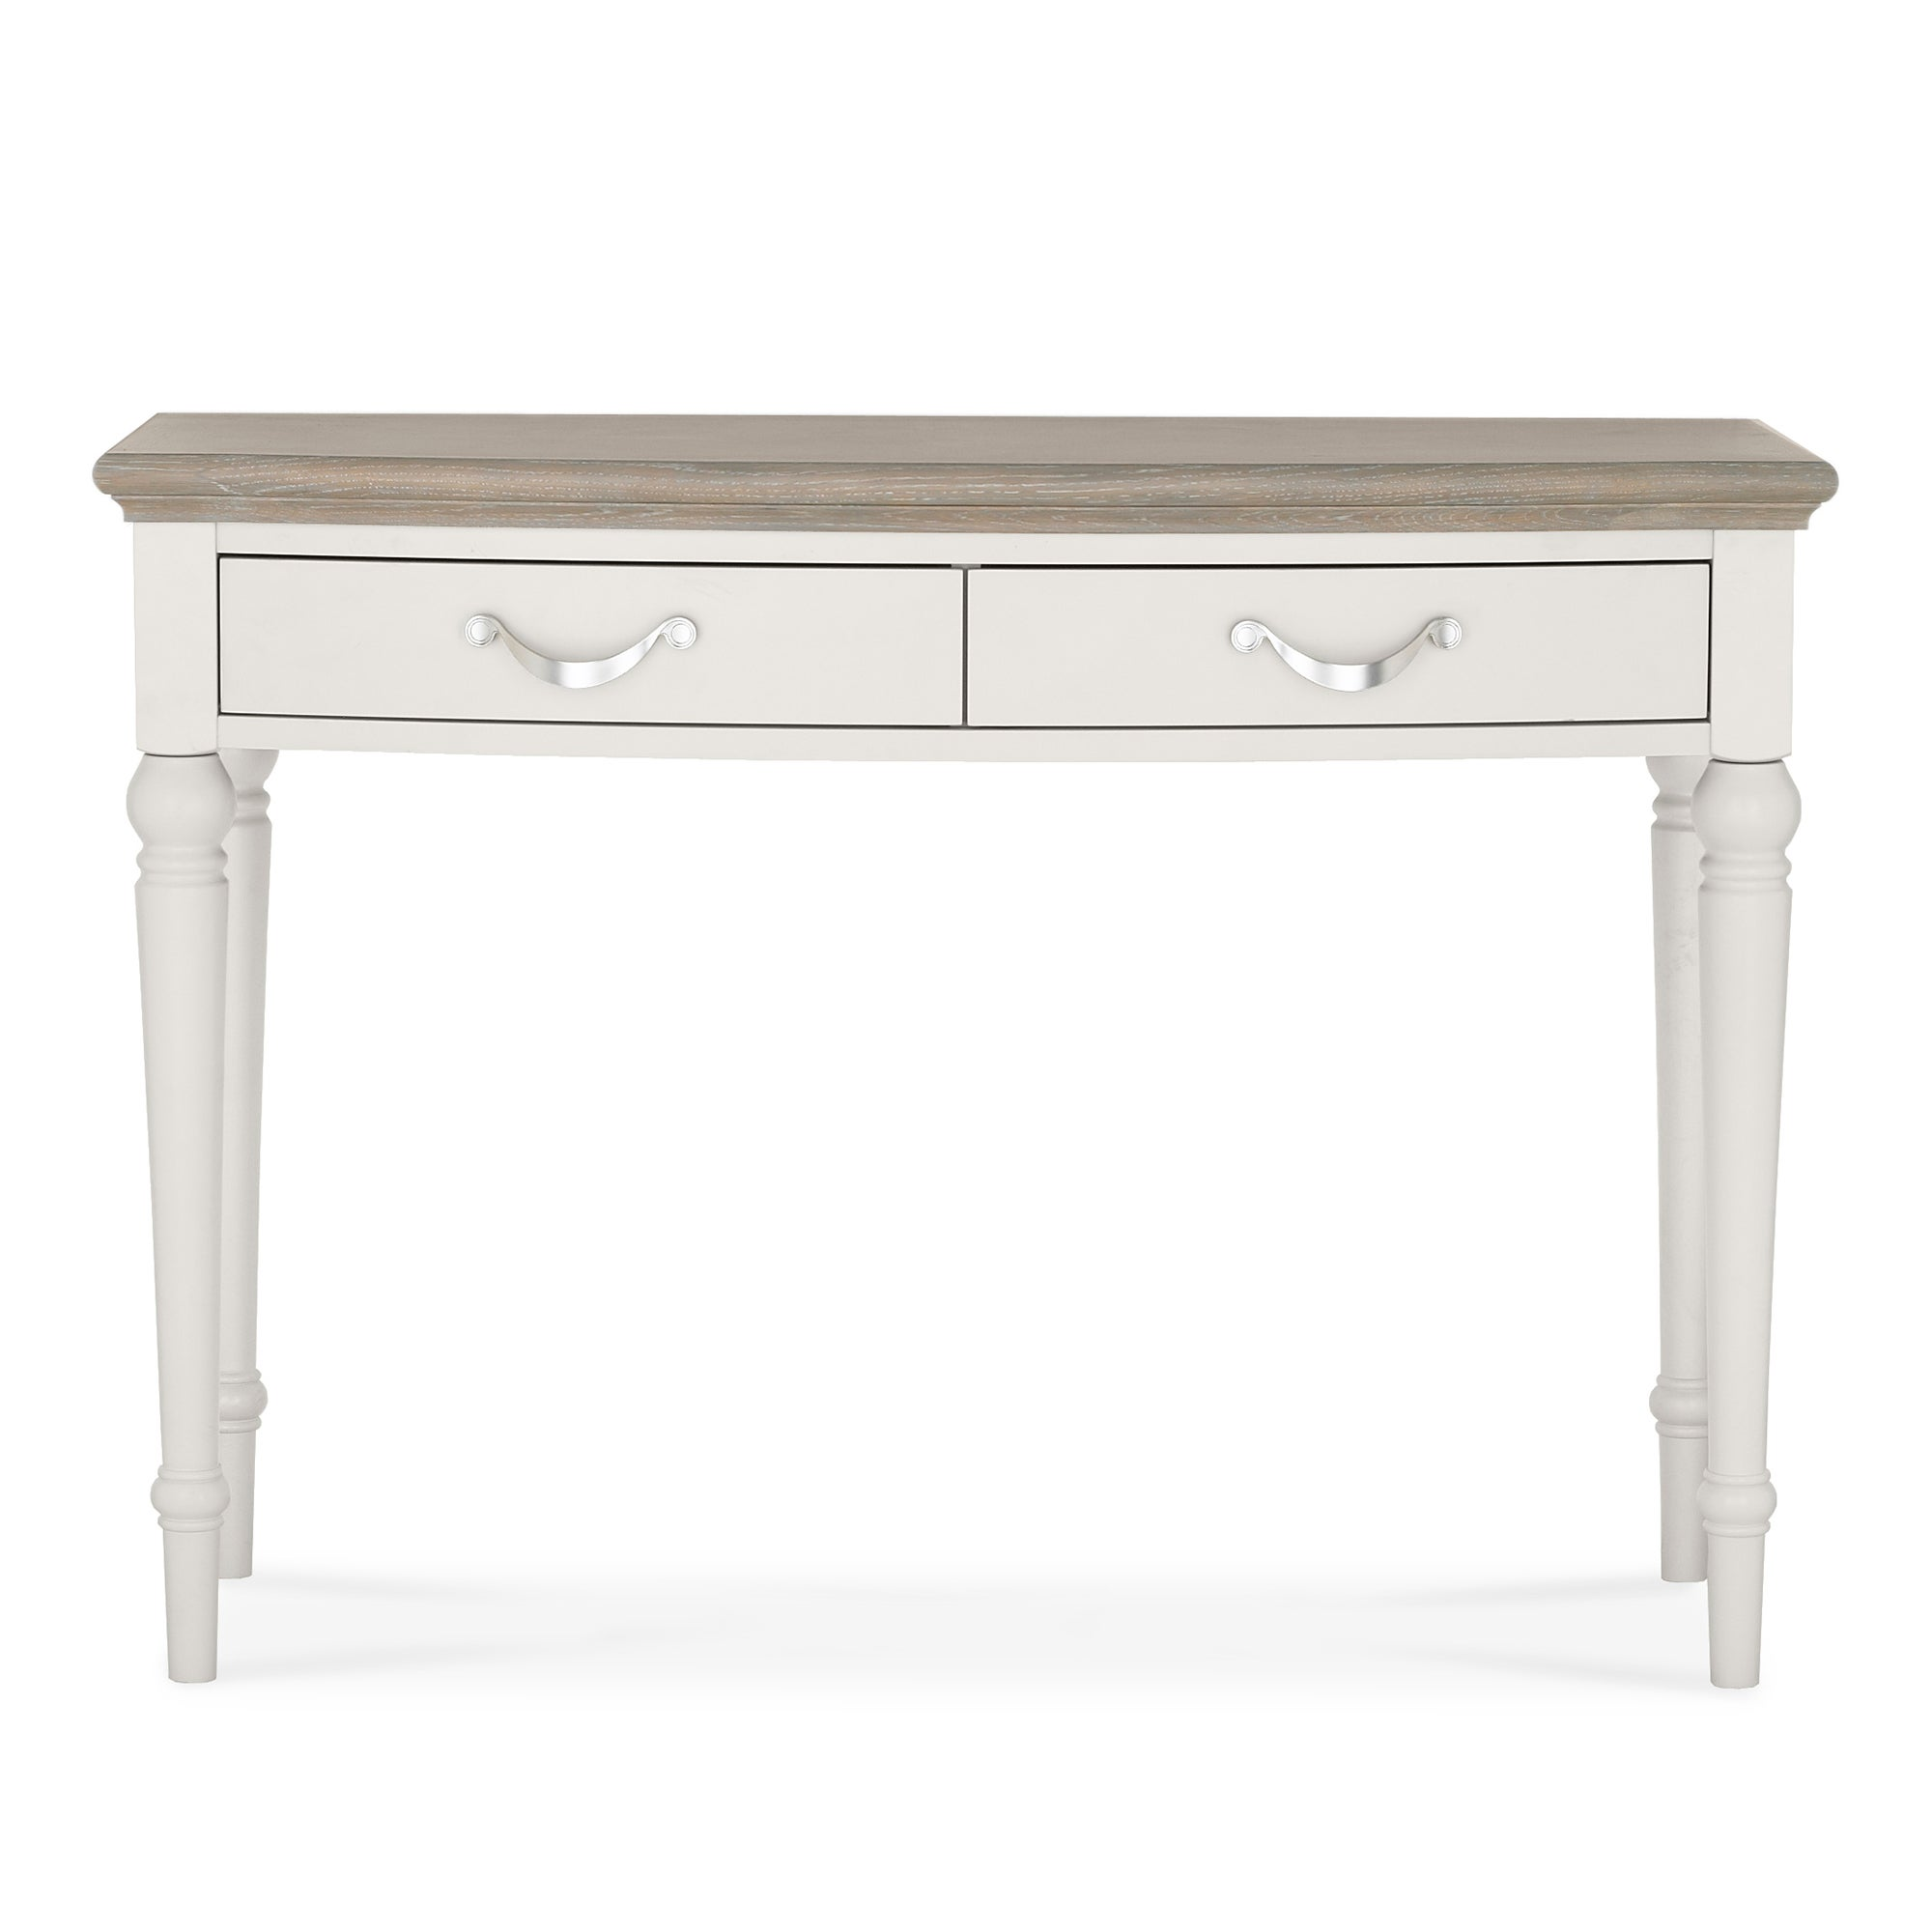 Photo of Sophia grey dressing table grey